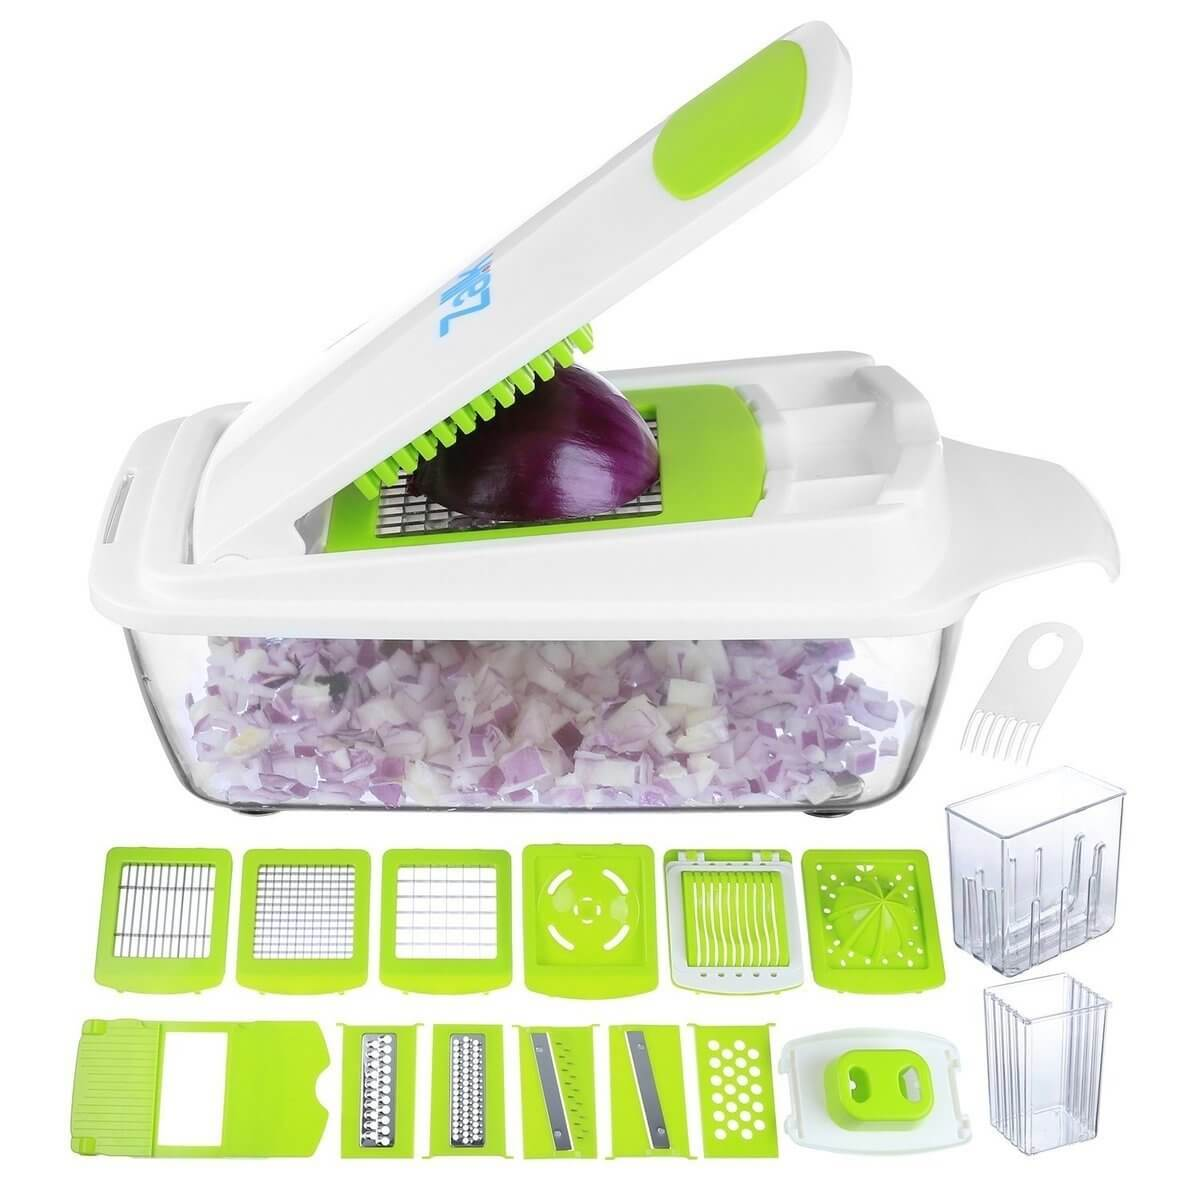 Zalik Vegetable Chopper Slicer Dicer Cutter & Grater